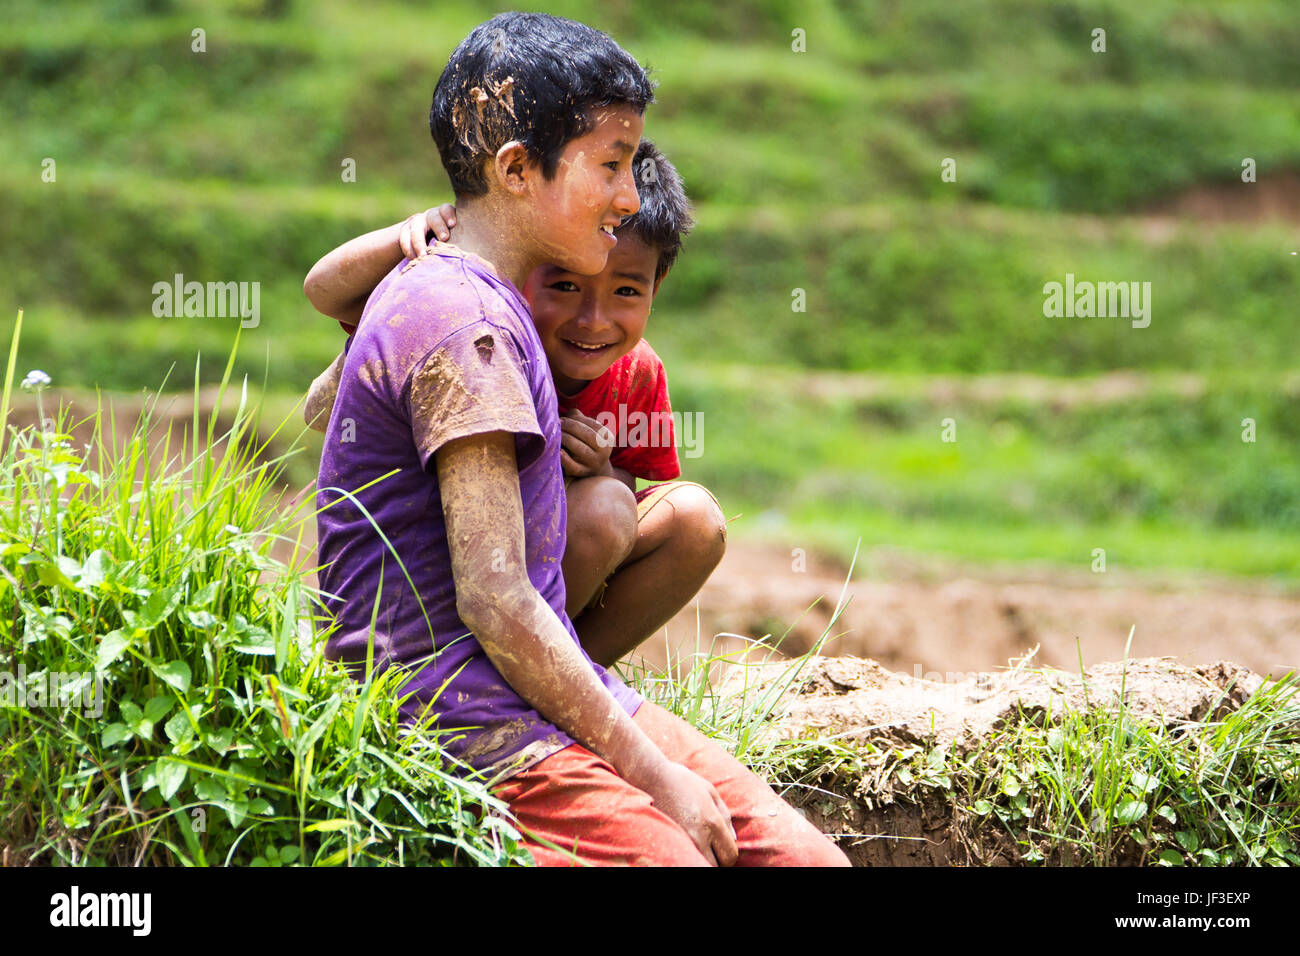 Nepali boys in a rice field, Nuwakot district, Nepal - Stock Image